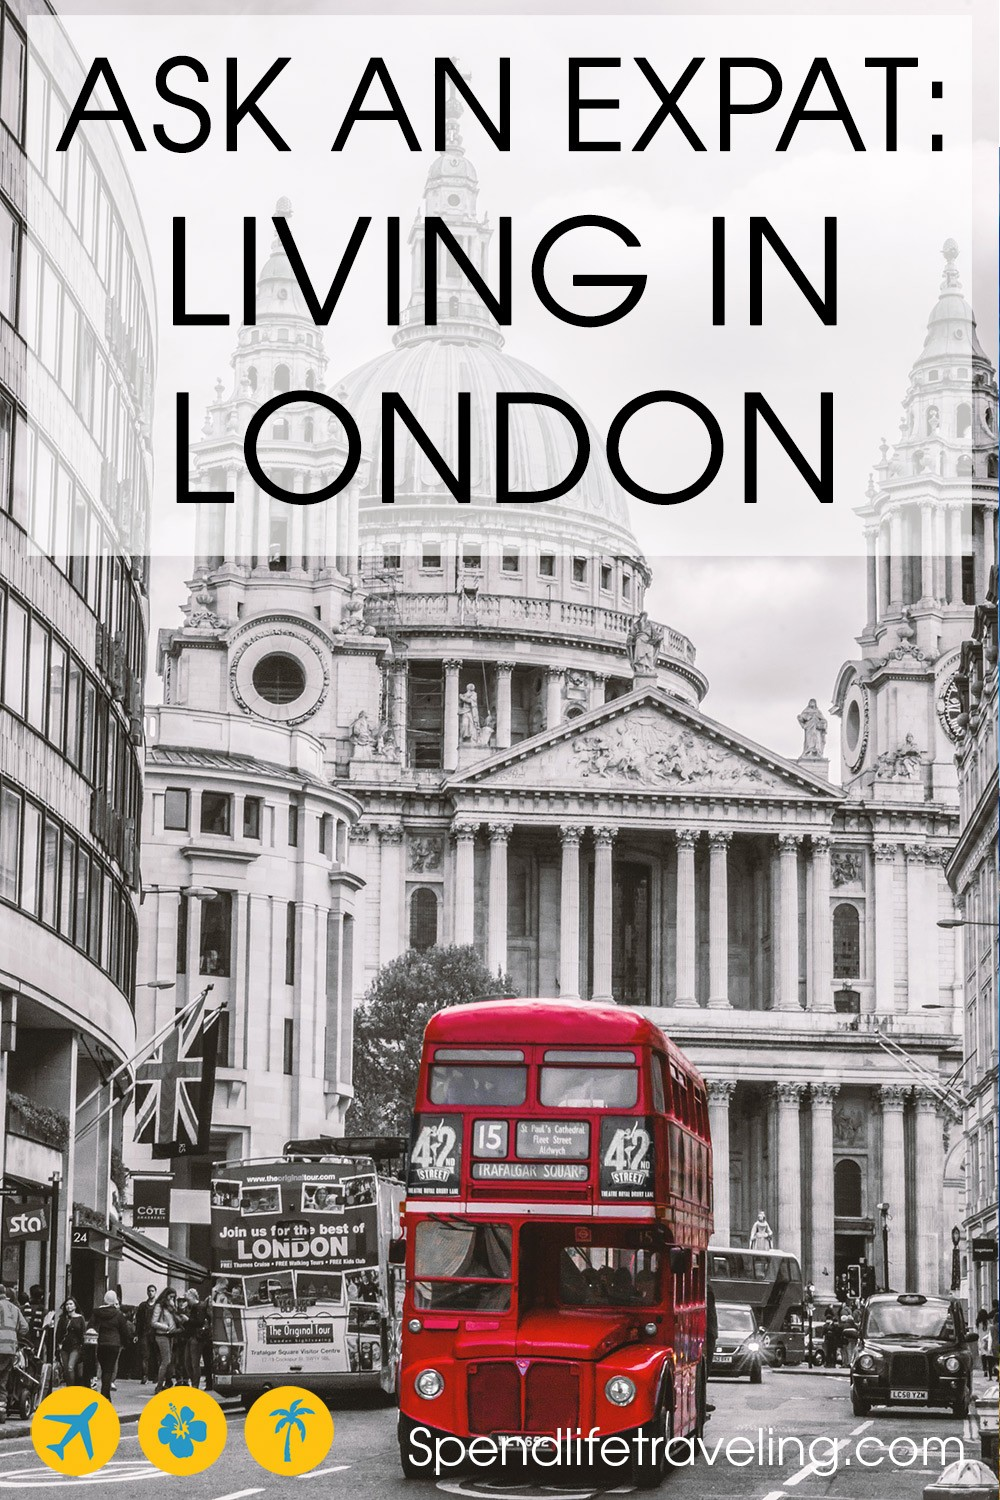 Expat life in London: Interview about moving to and living in London.